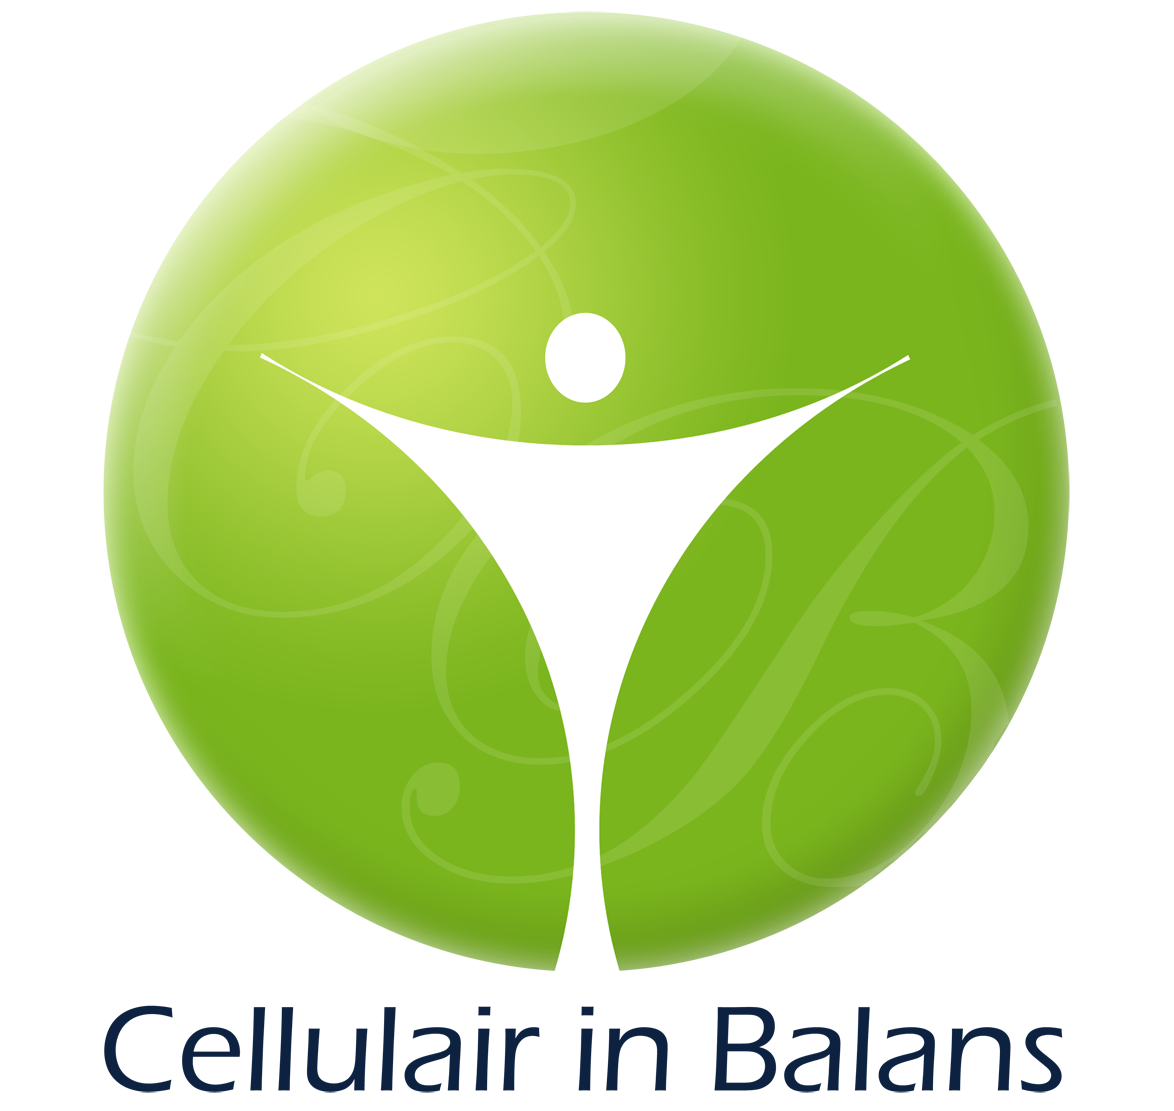 Cellulair in Balans